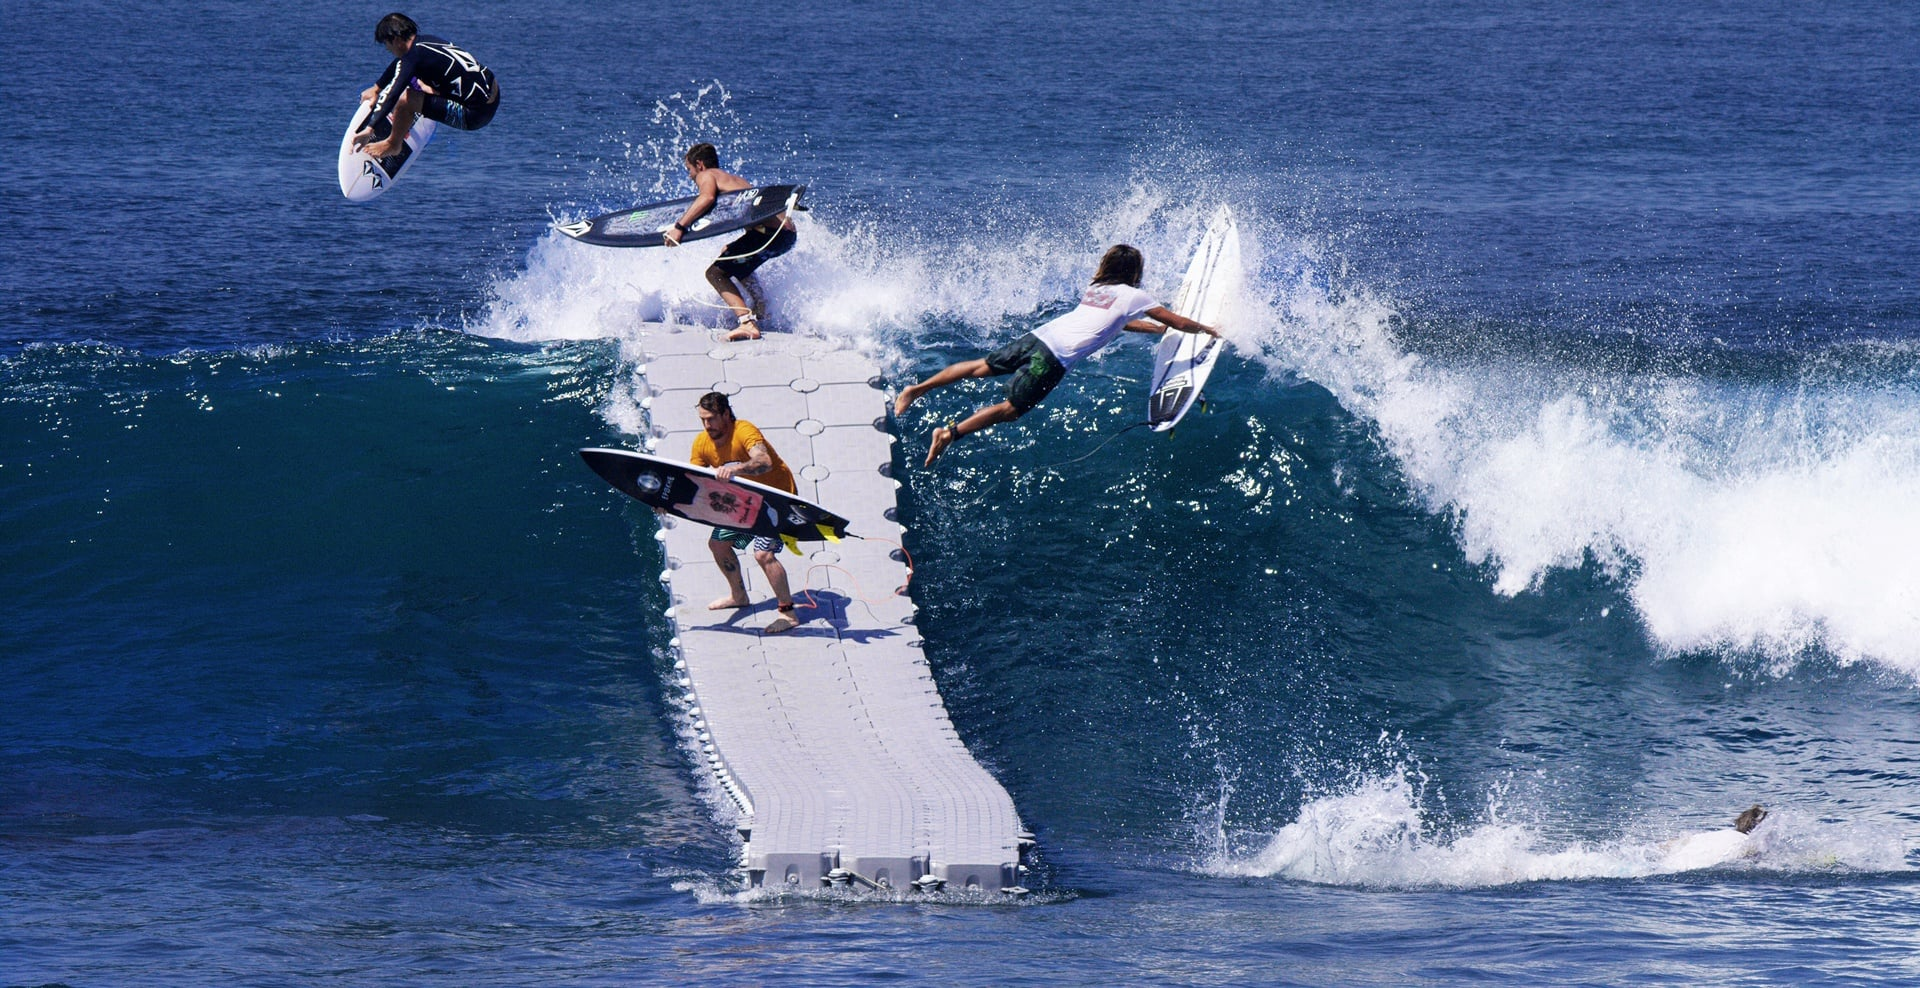 378048695f8 The Stab Magazine Stunt: the boldest of surf events | Candock